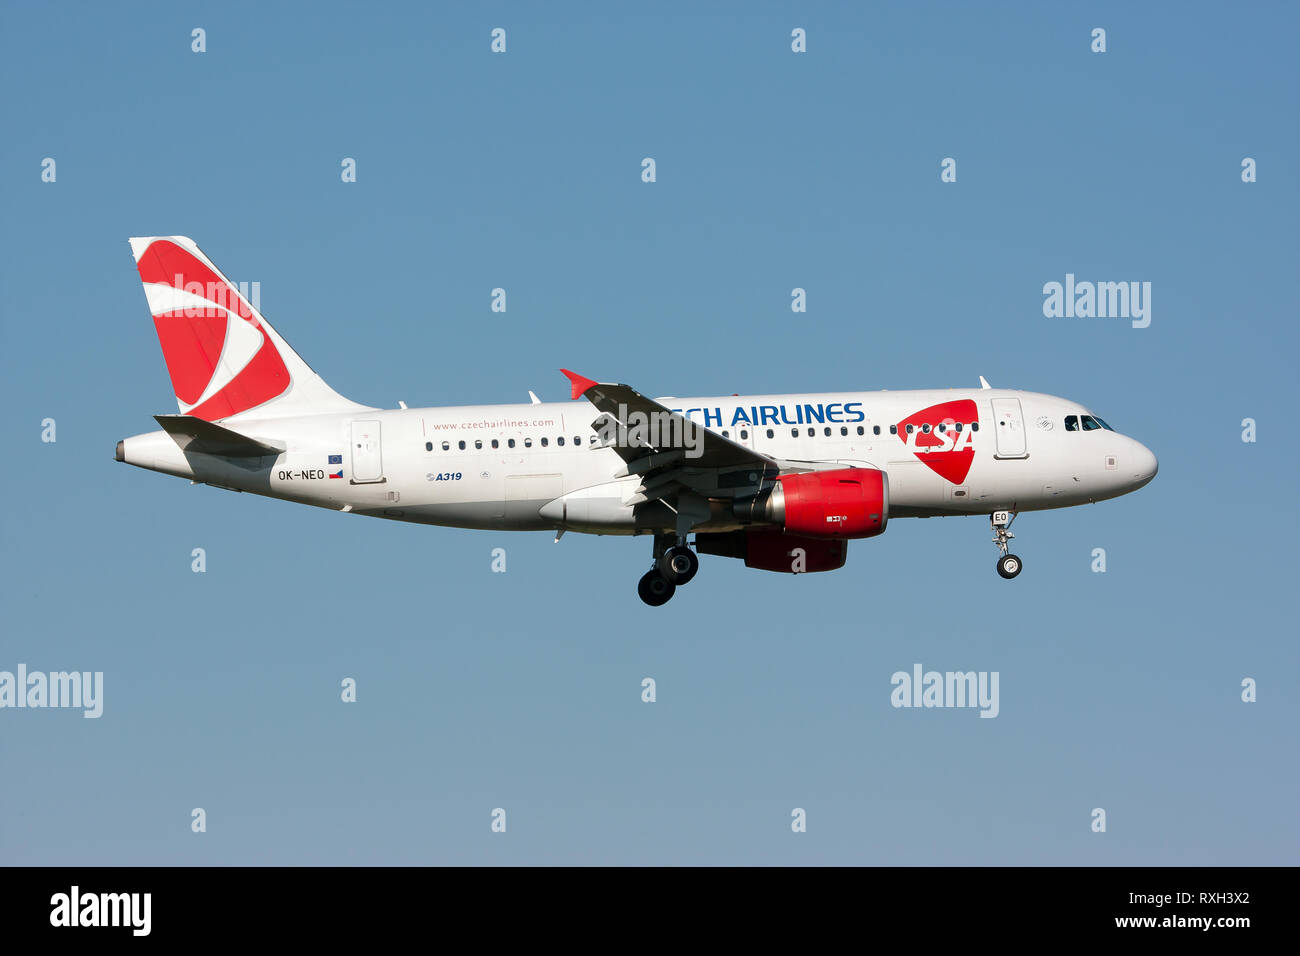 Rome, Italy. 6th July, 2014. A CSA Czech Airlines Airbus 319 seen landing at Rome Fiumicino airport. Credit: Fabrizio Gandolfo/SOPA Images/ZUMA Wire/Alamy Live News - Stock Image